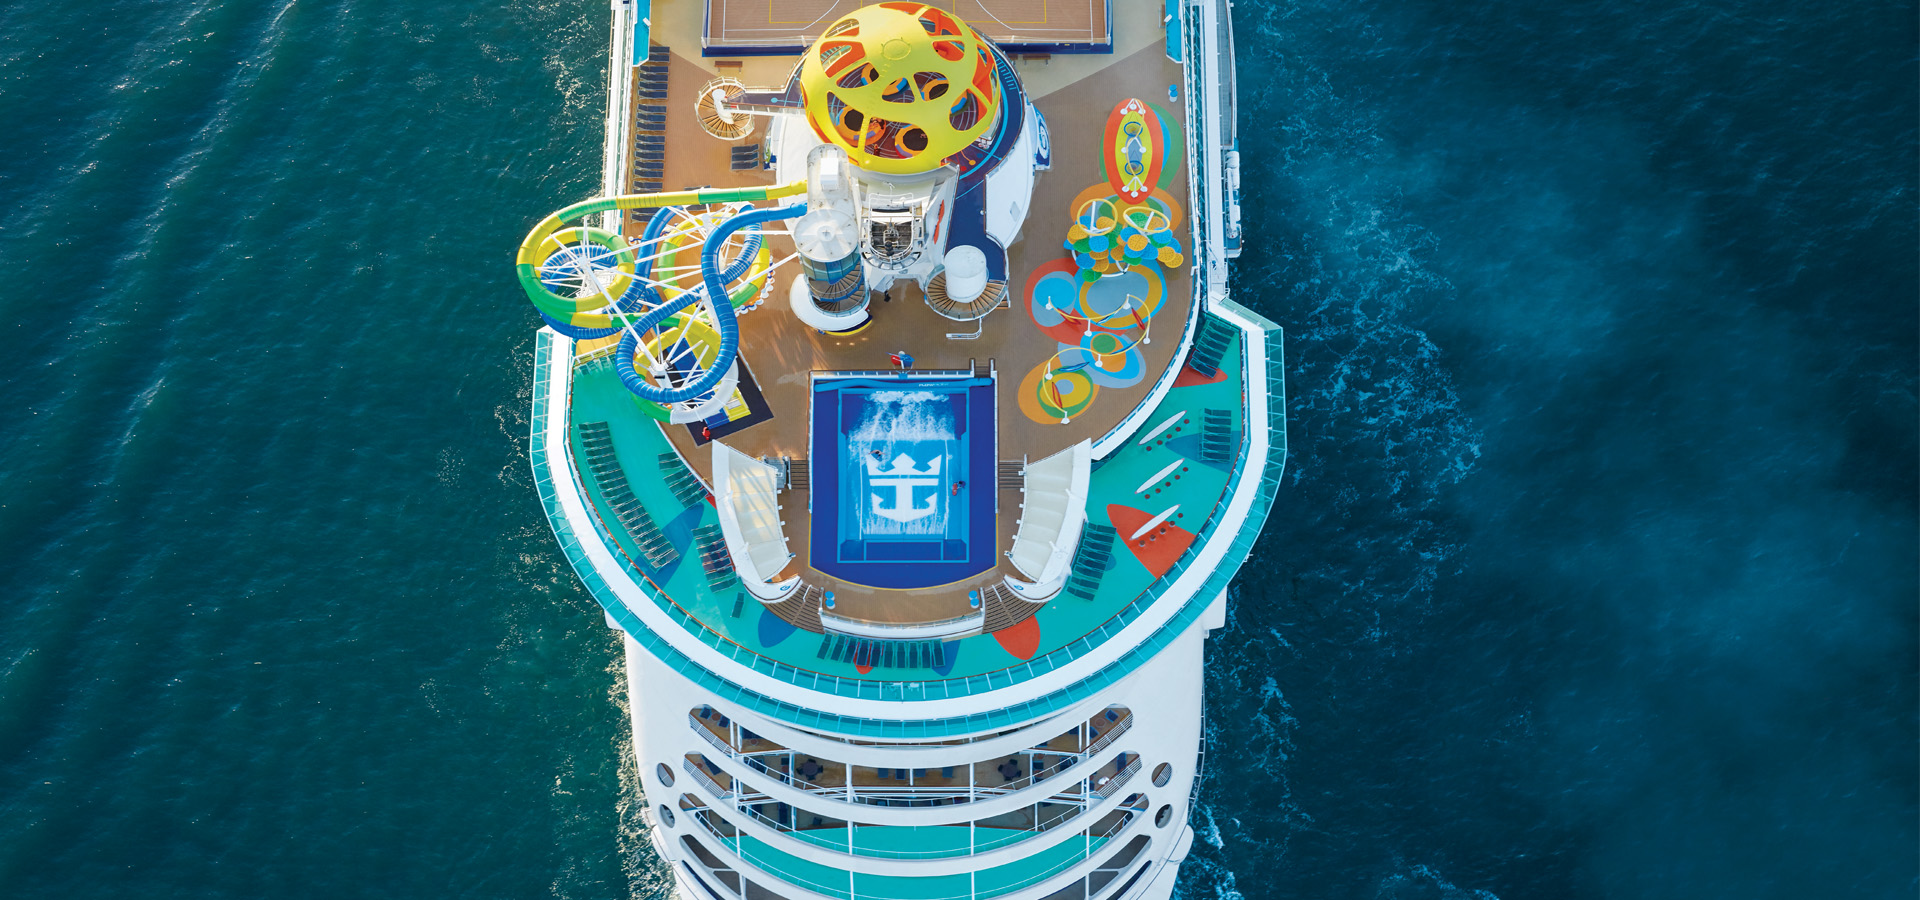 Top 10 Free Things To Do On Board Independence Of The Seas